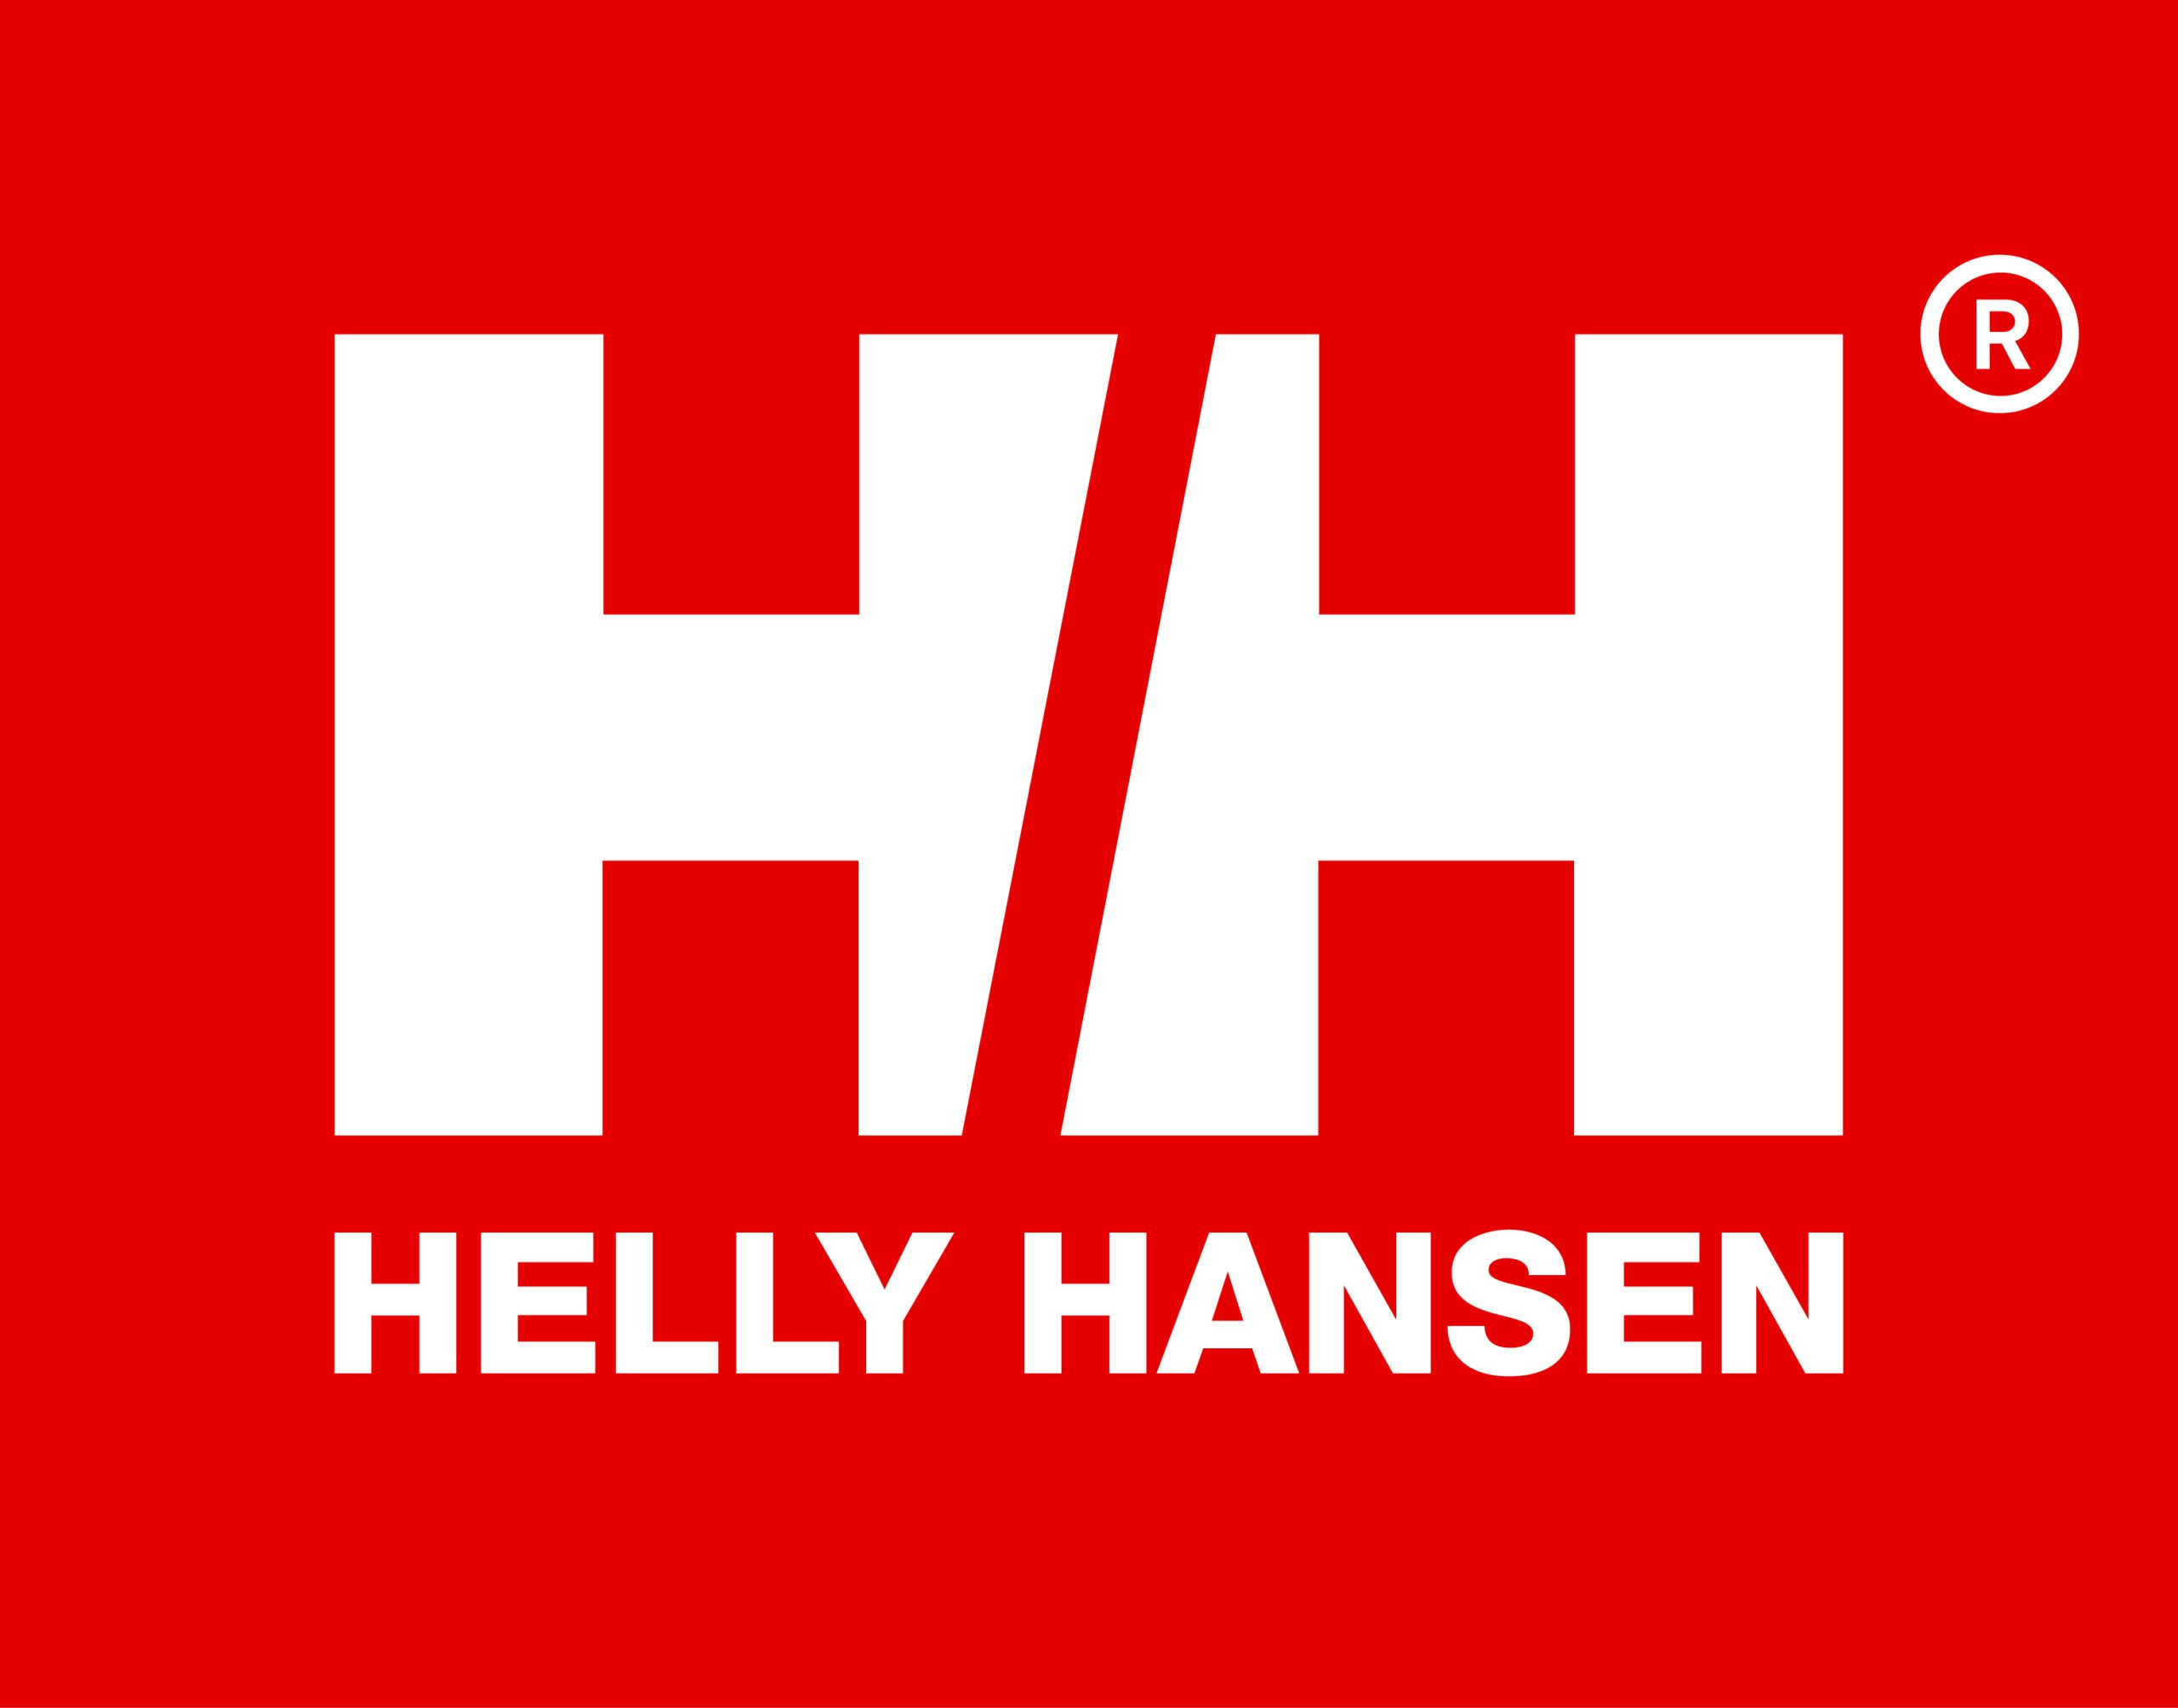 https://www.dtacticalsupply.com/wp-content/uploads/2020/03/helly-hansen-scaled.jpg